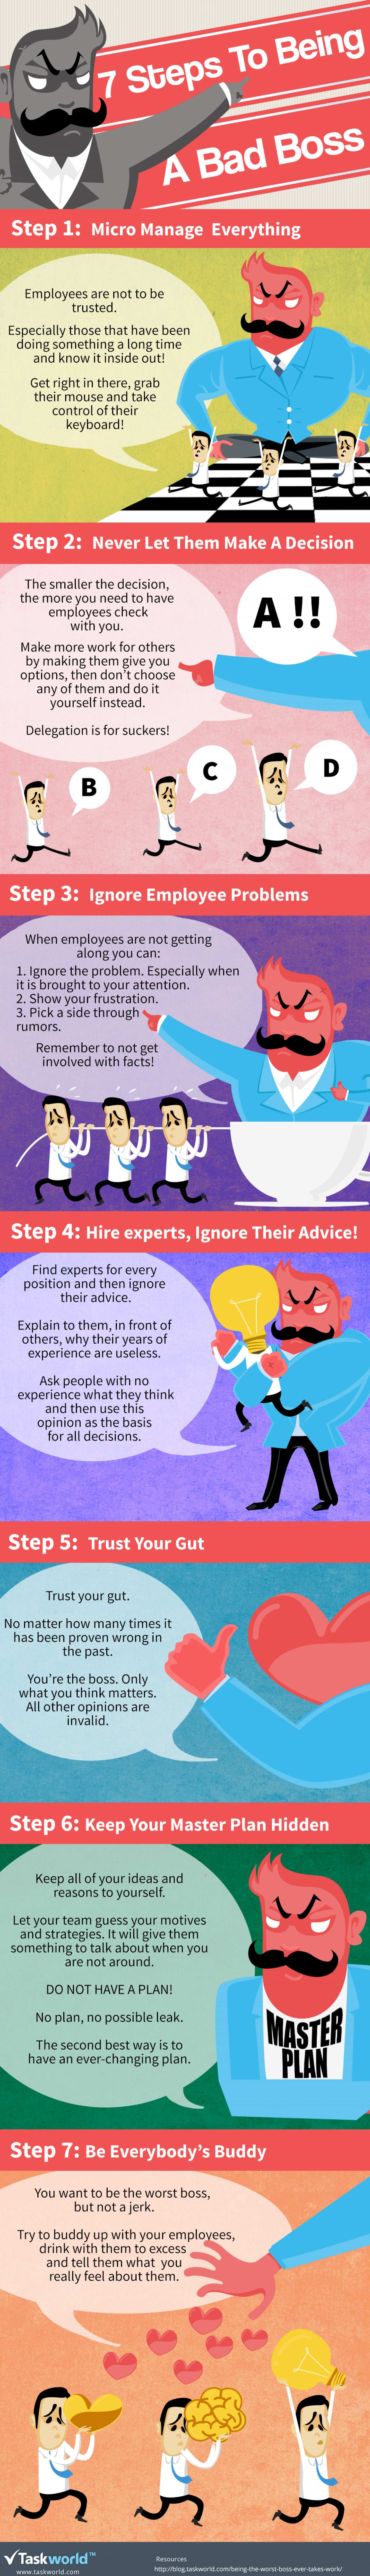 7 Steps to Being a Bad Boss Infographic